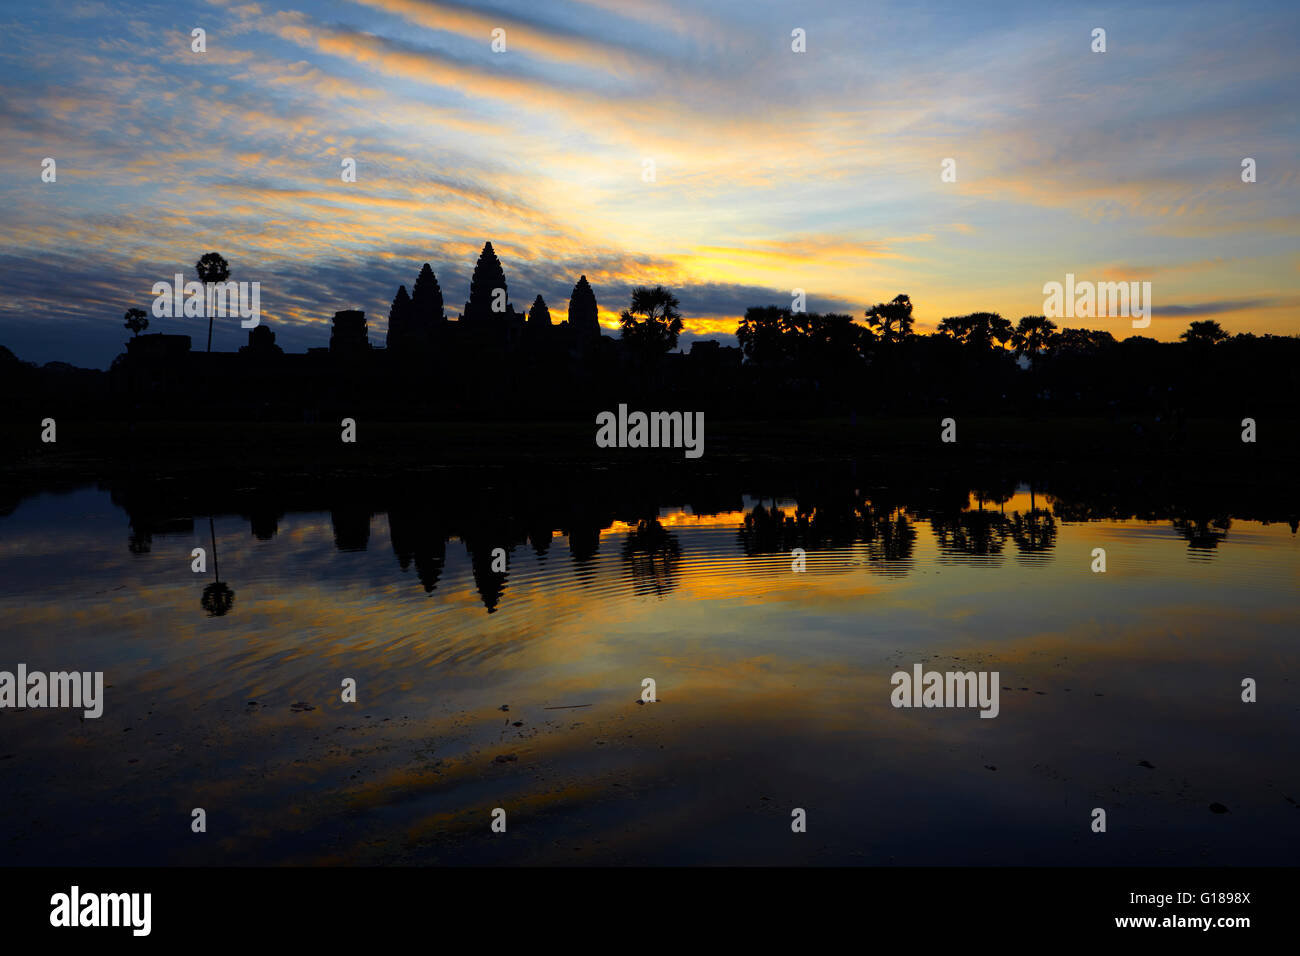 Angkor Wat temple at sunrise, Siem Reap, Cambodia - Stock Image